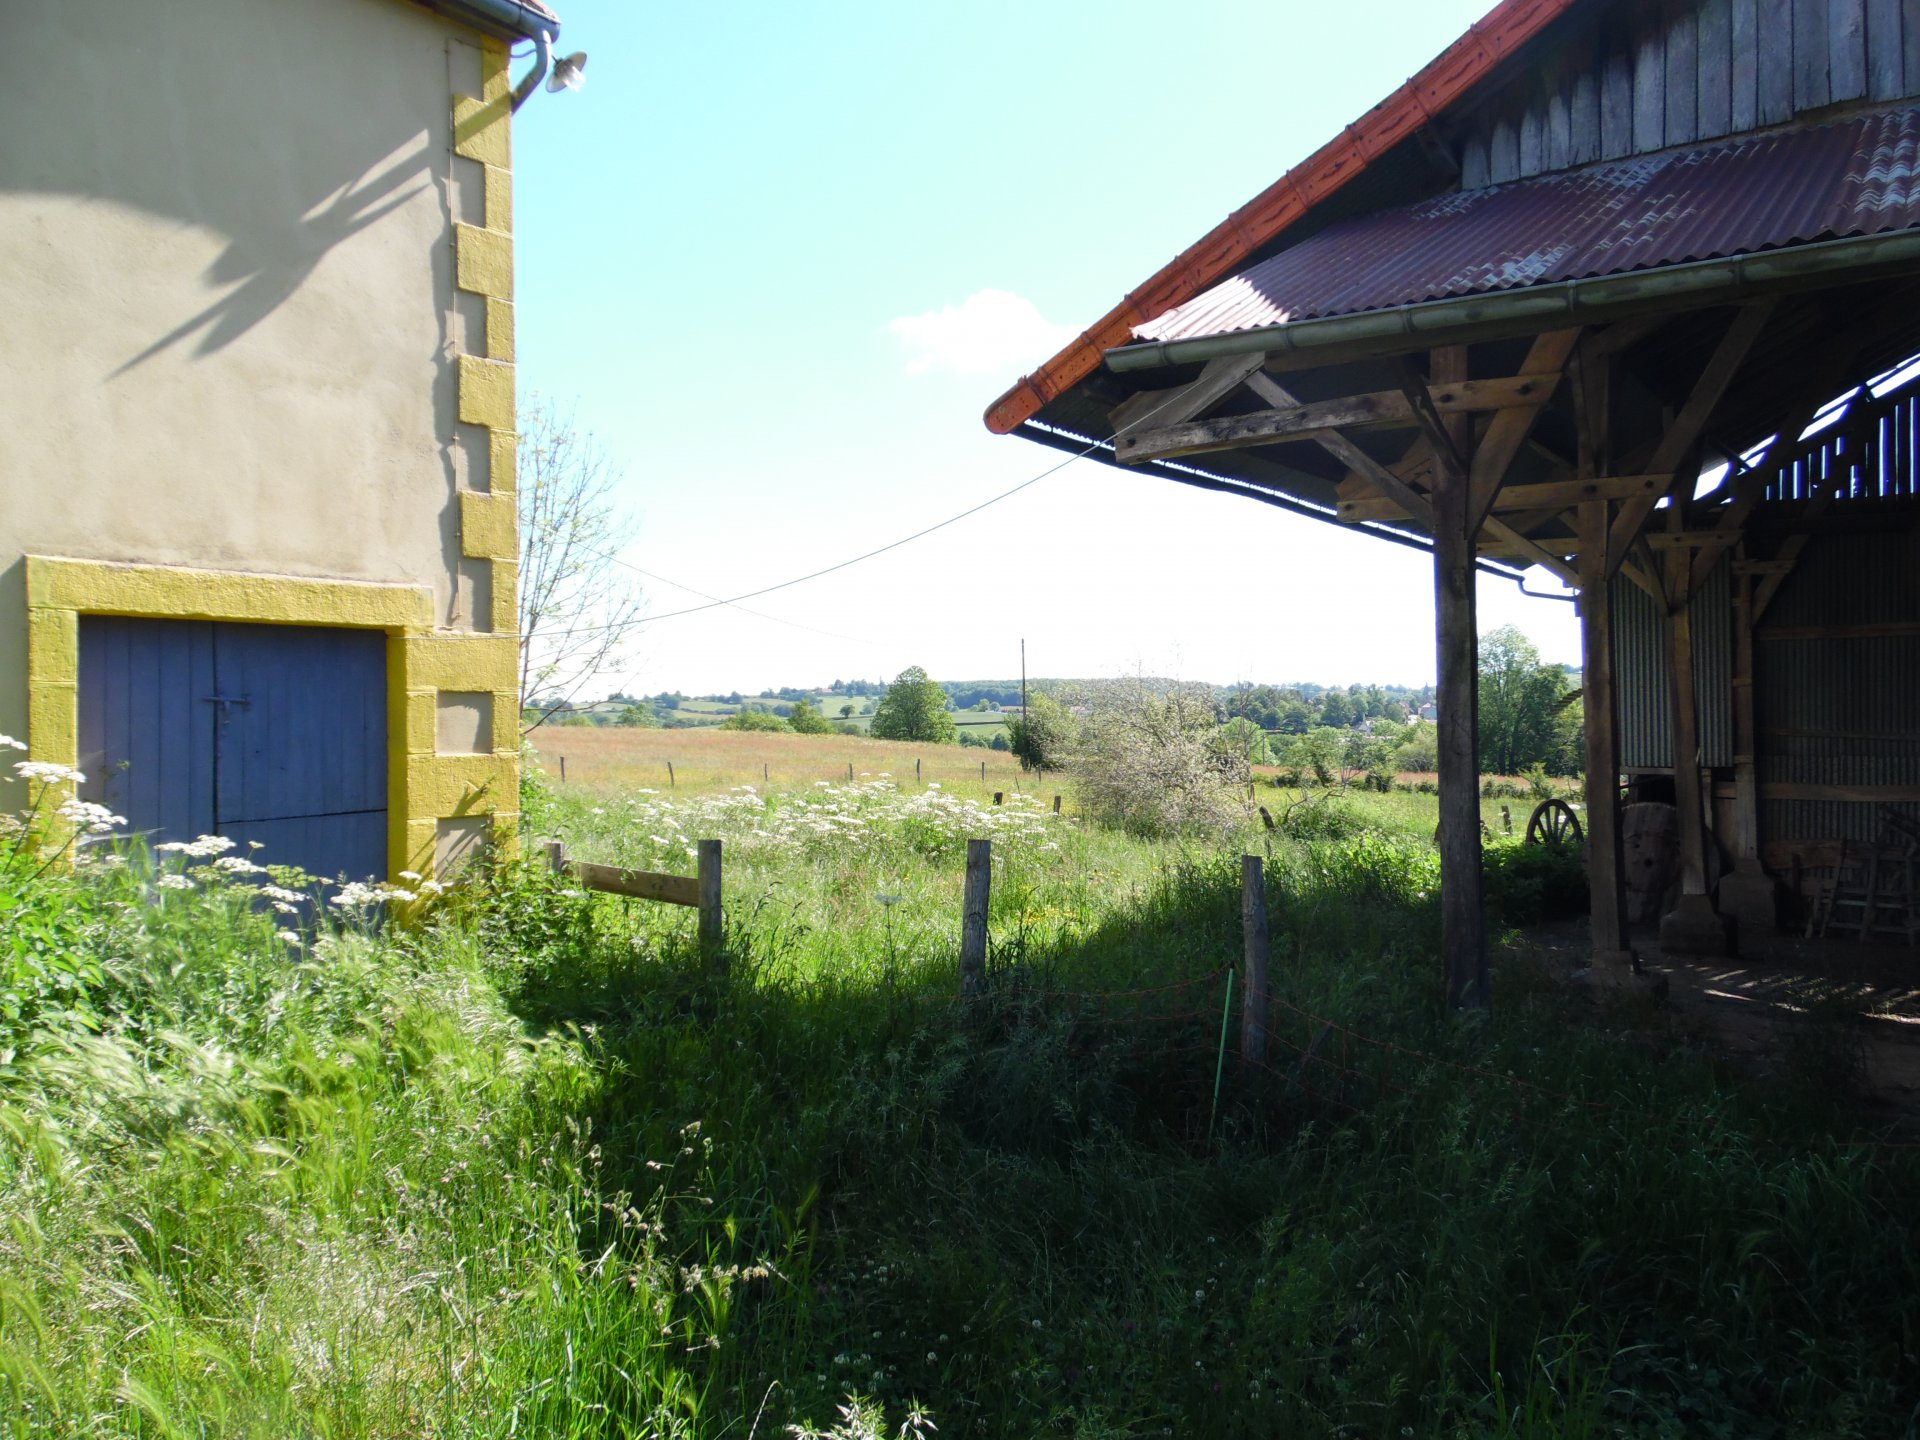 For sale, Auvergne, farmhouse, outbuildings, land 4990m².